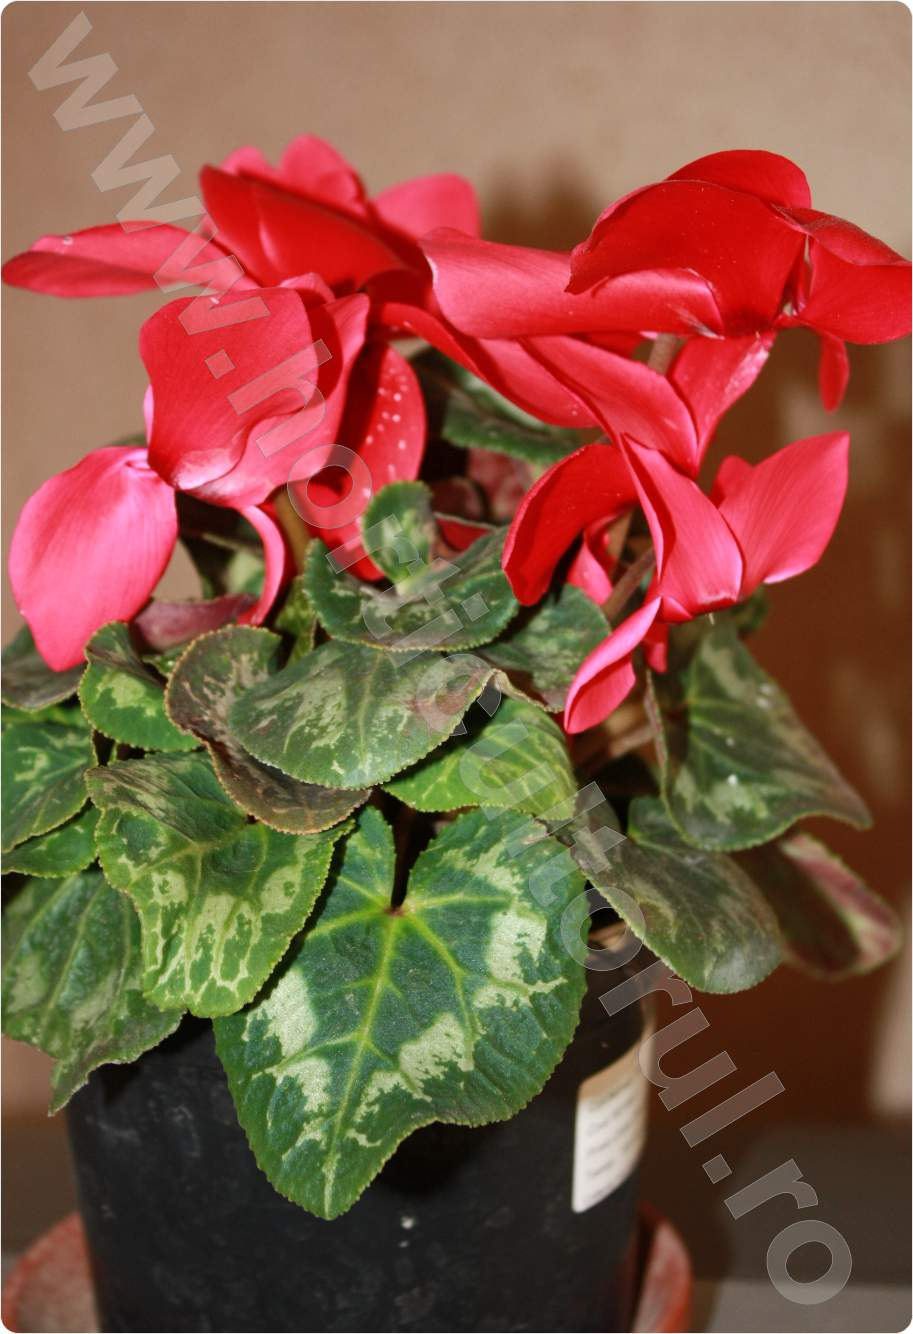 Cyclamen_rosu coray_1